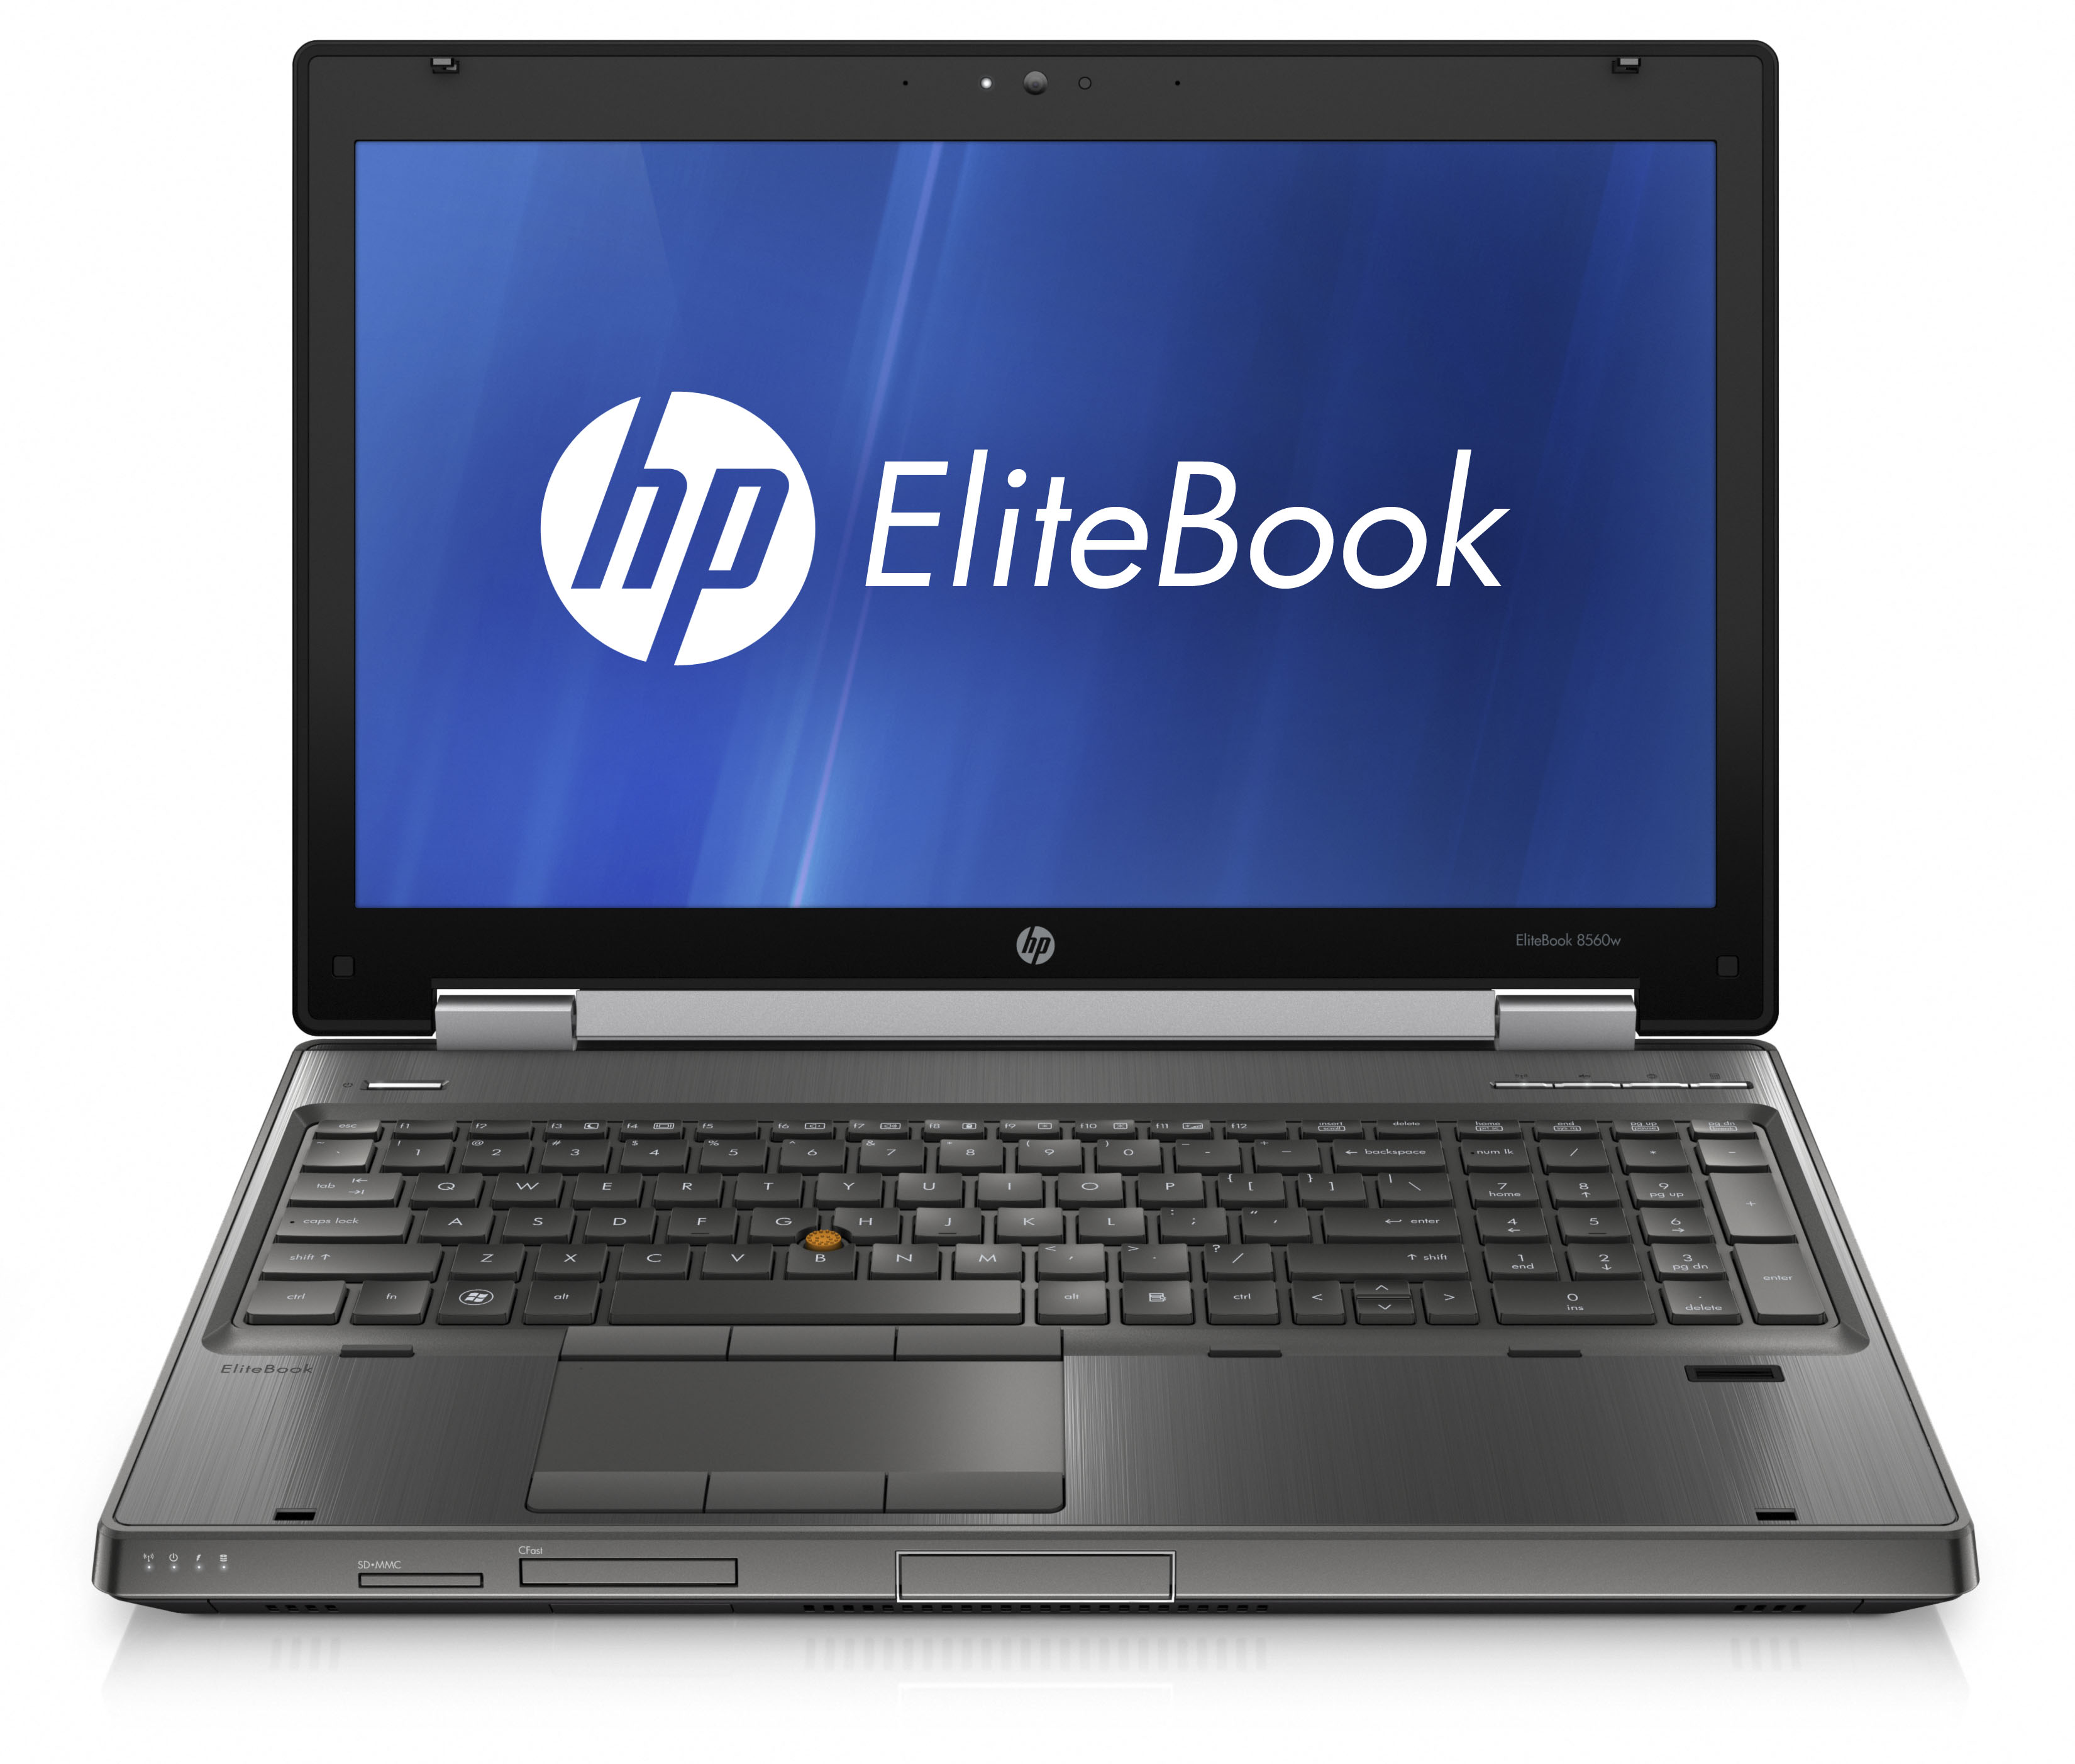 EliteBook 8560w Display